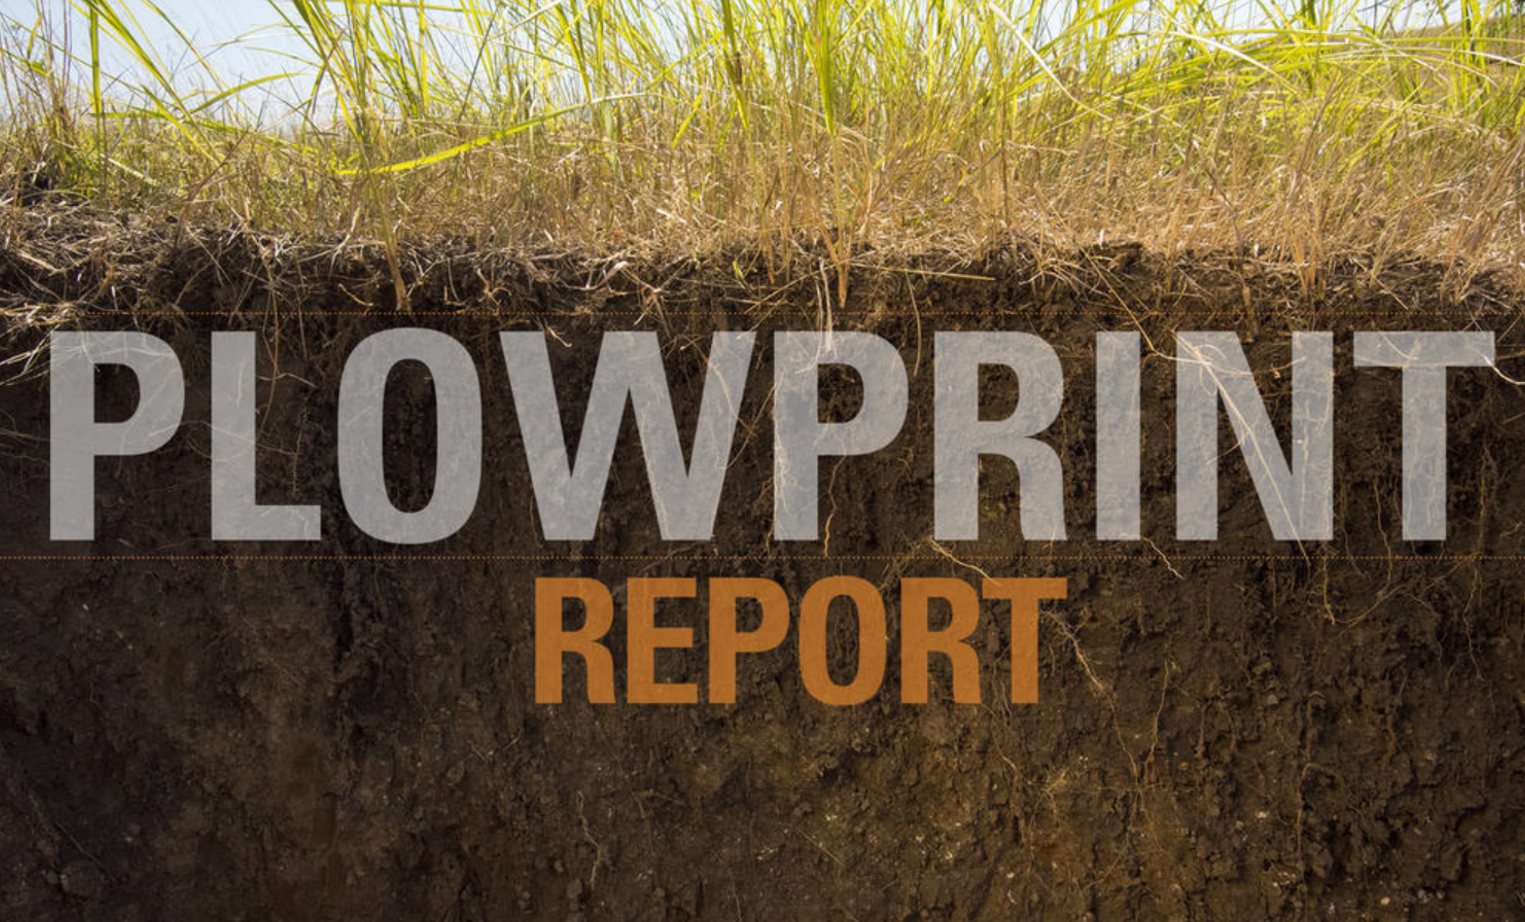 cover page of Plowprint Report from World Wildlife Fund